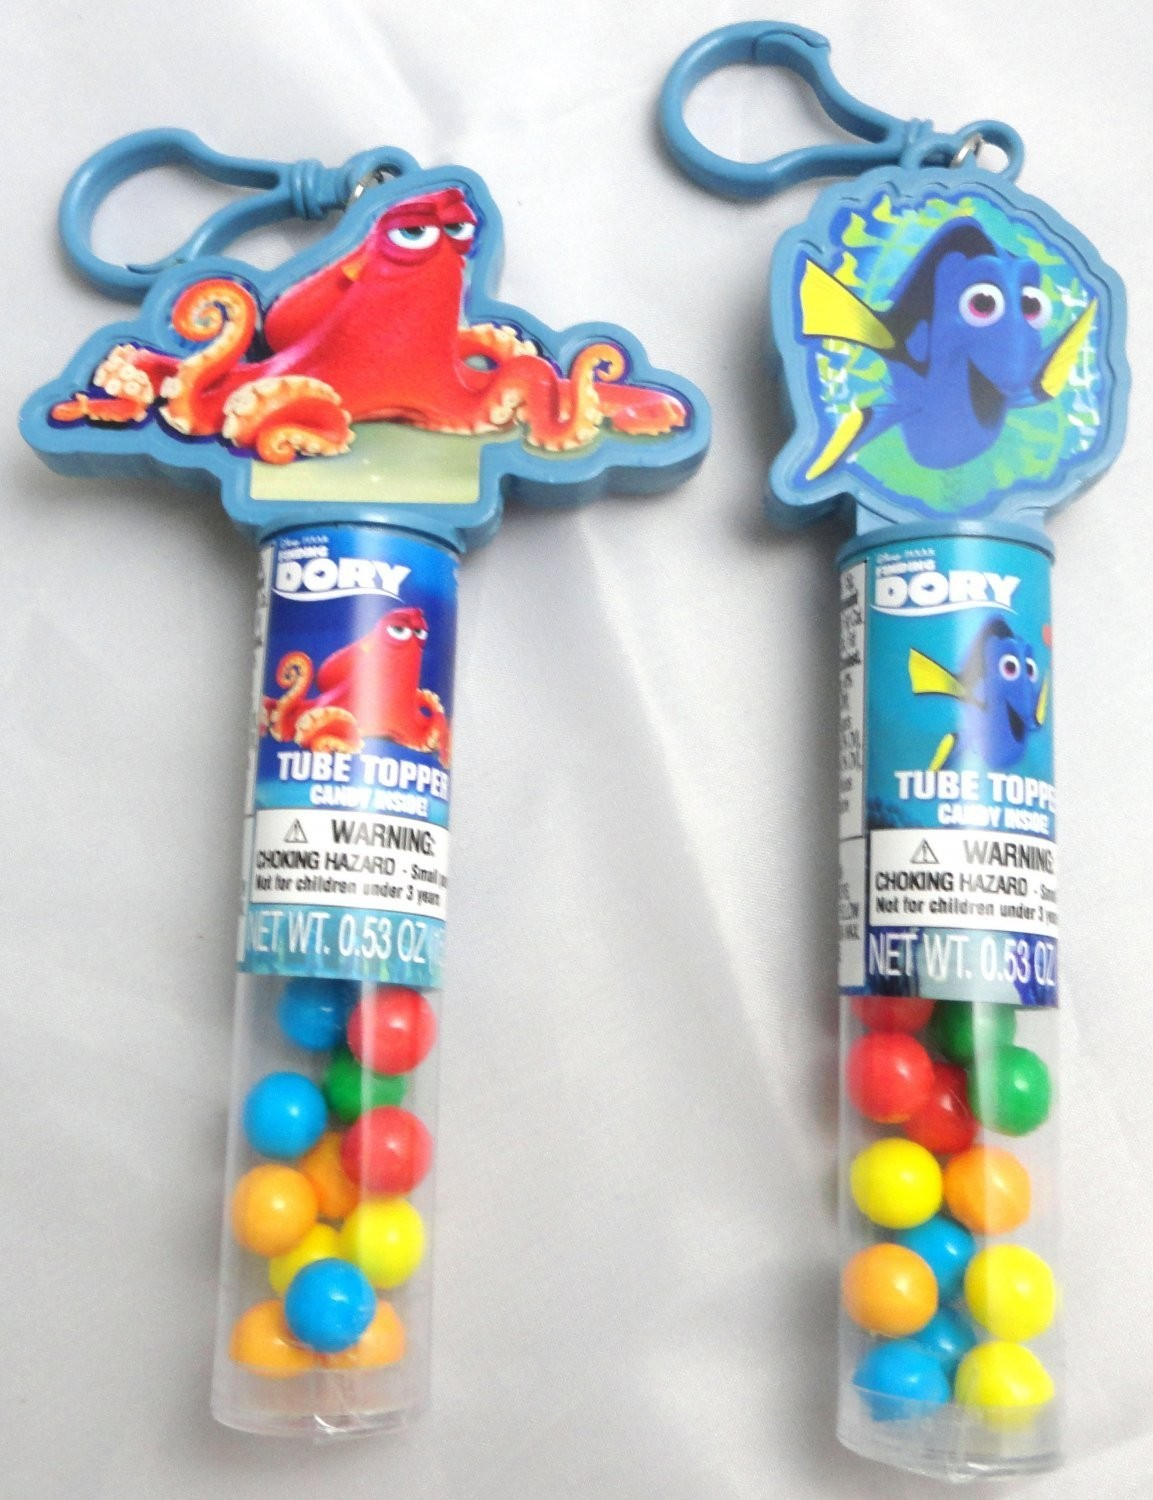 Disney Finding Dory Tube Topper with Key Chain